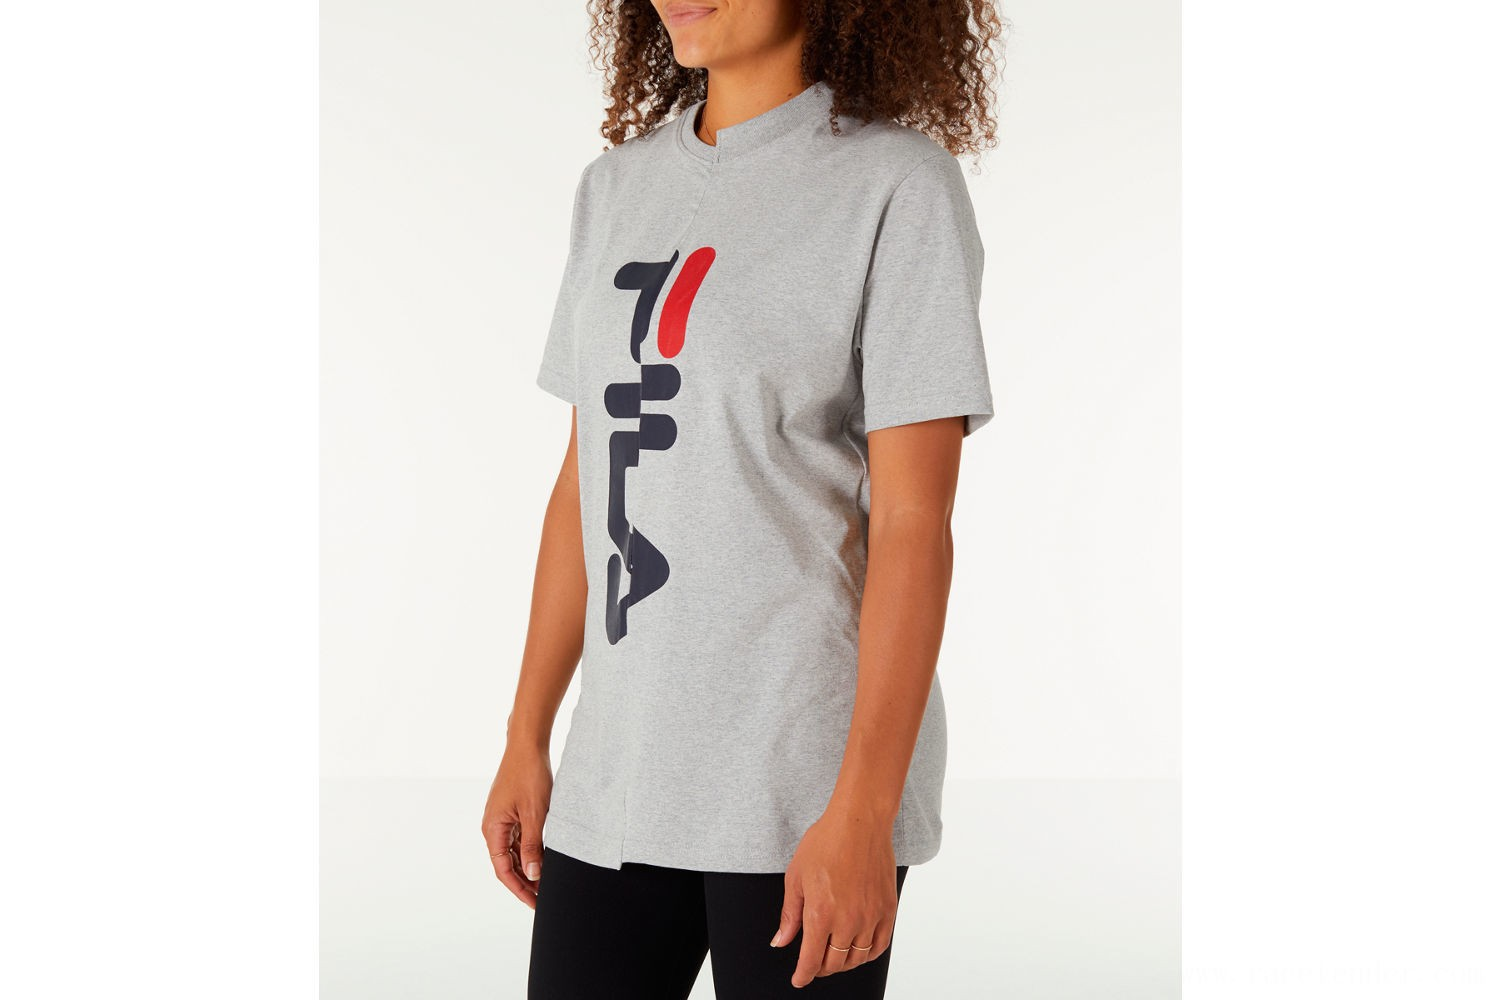 Fila Women's Teresa Spliced T-Shirt - Grey/Navy